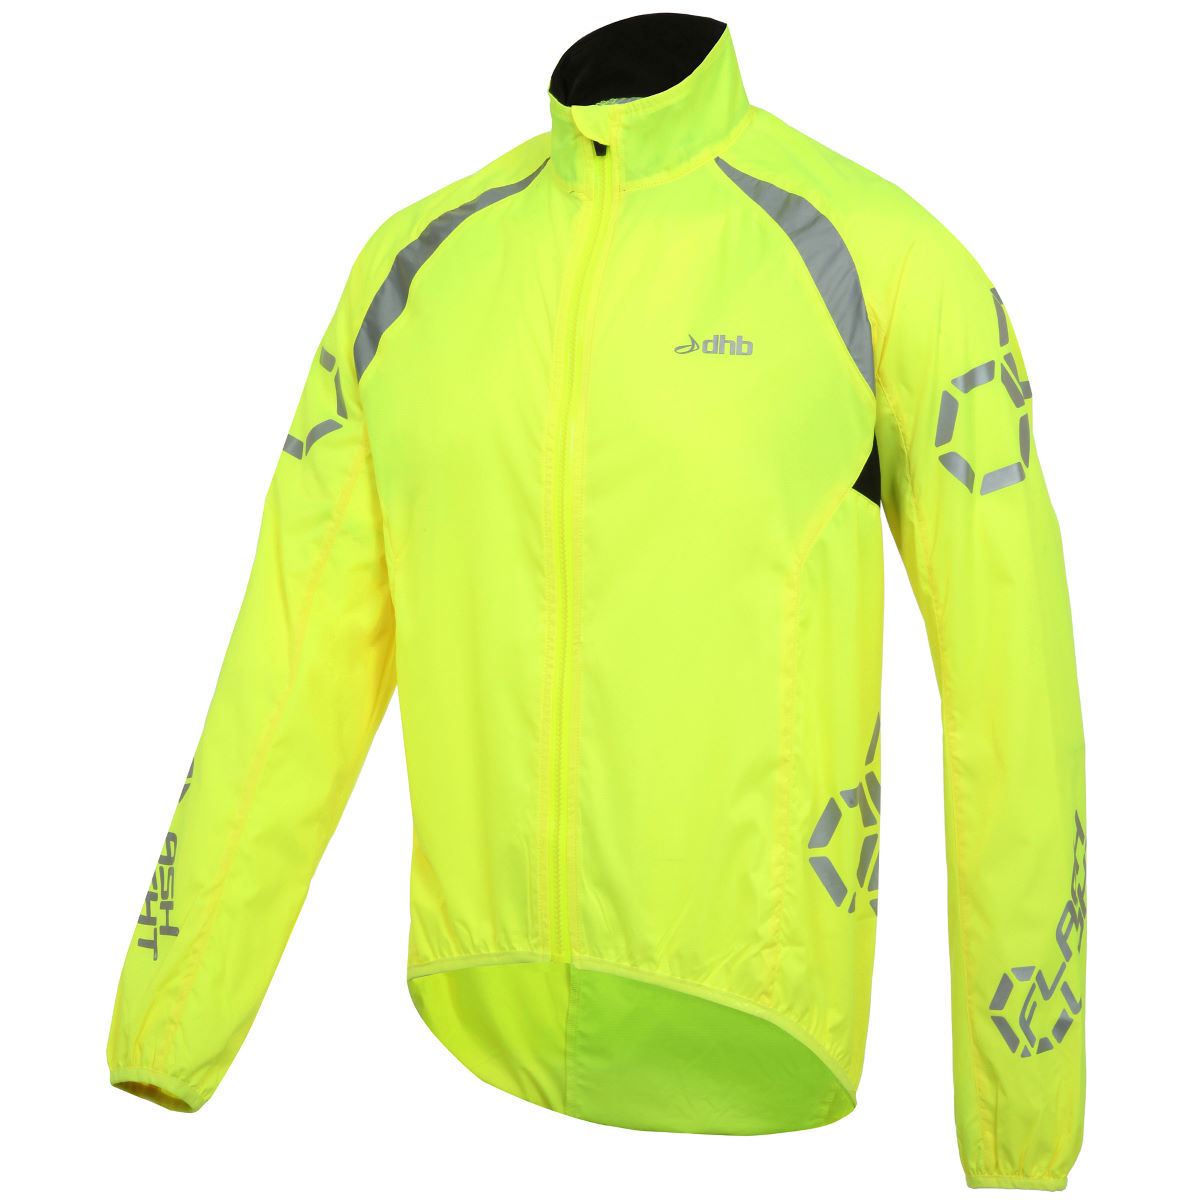 Veste dhb Flashlight (coupe-vent) - M Fluro Yellow Coupe-vents vélo